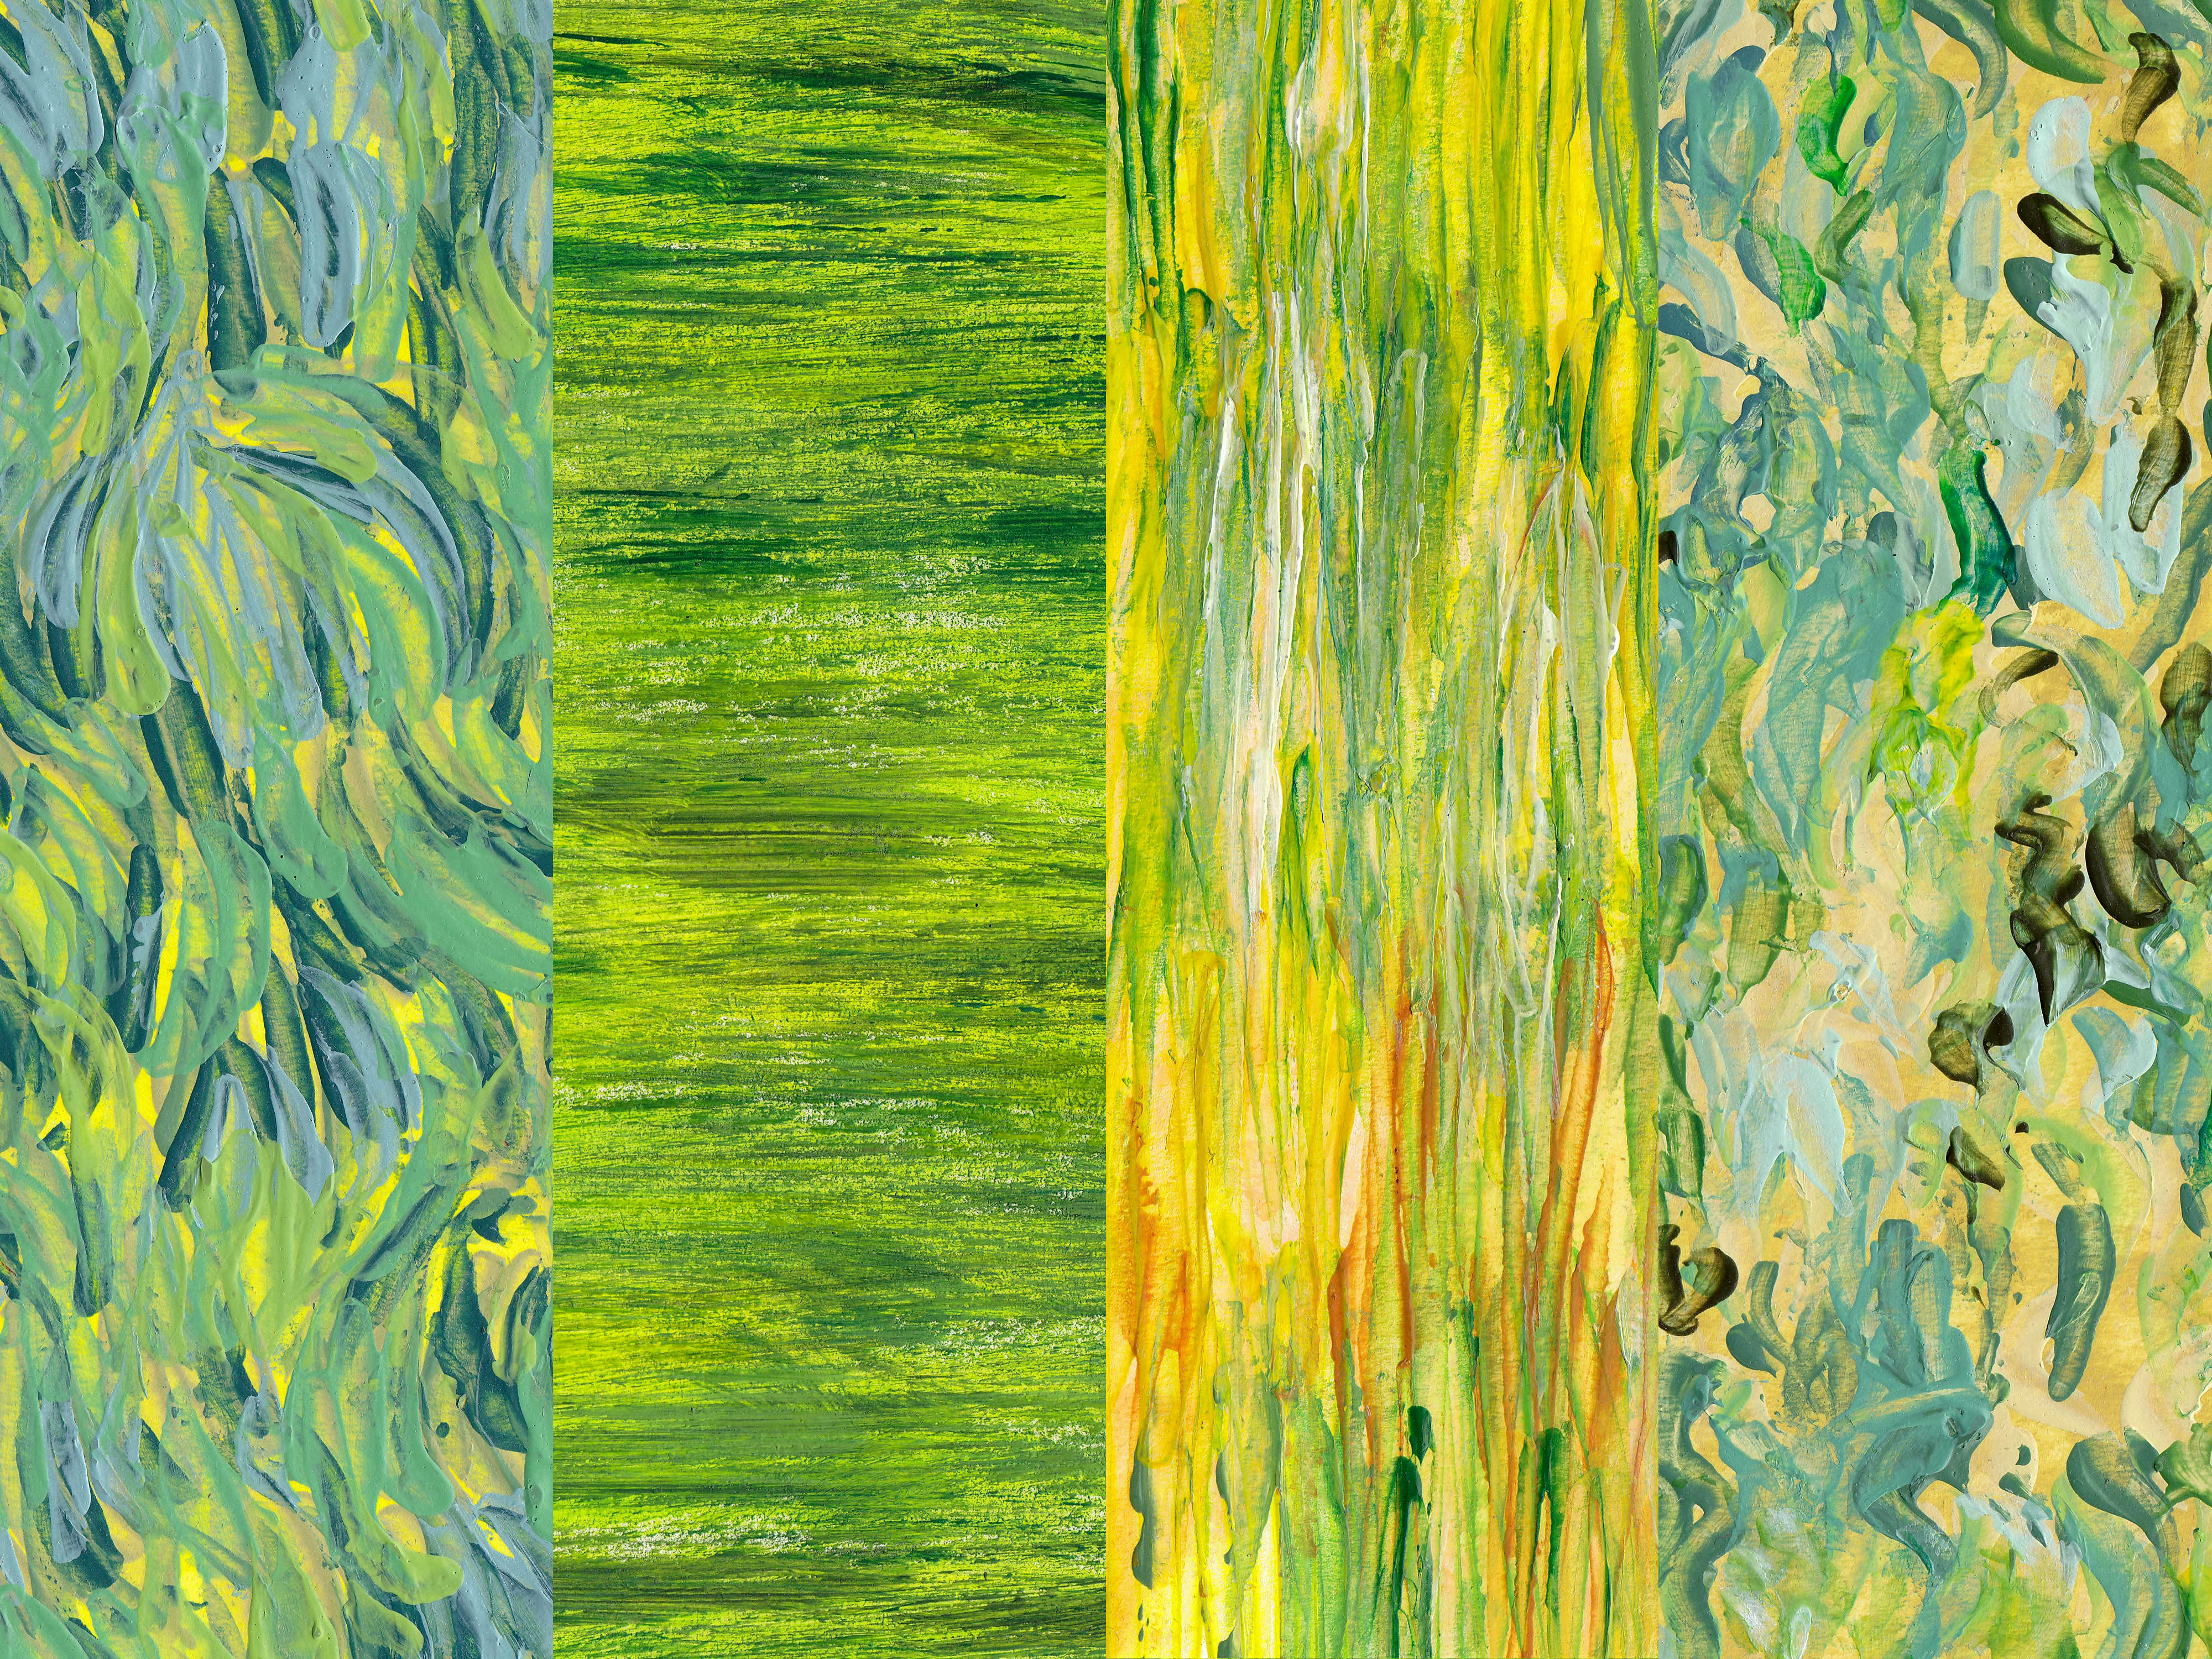 green-yellow-abstract-painting-backgrounds-cover.jpg